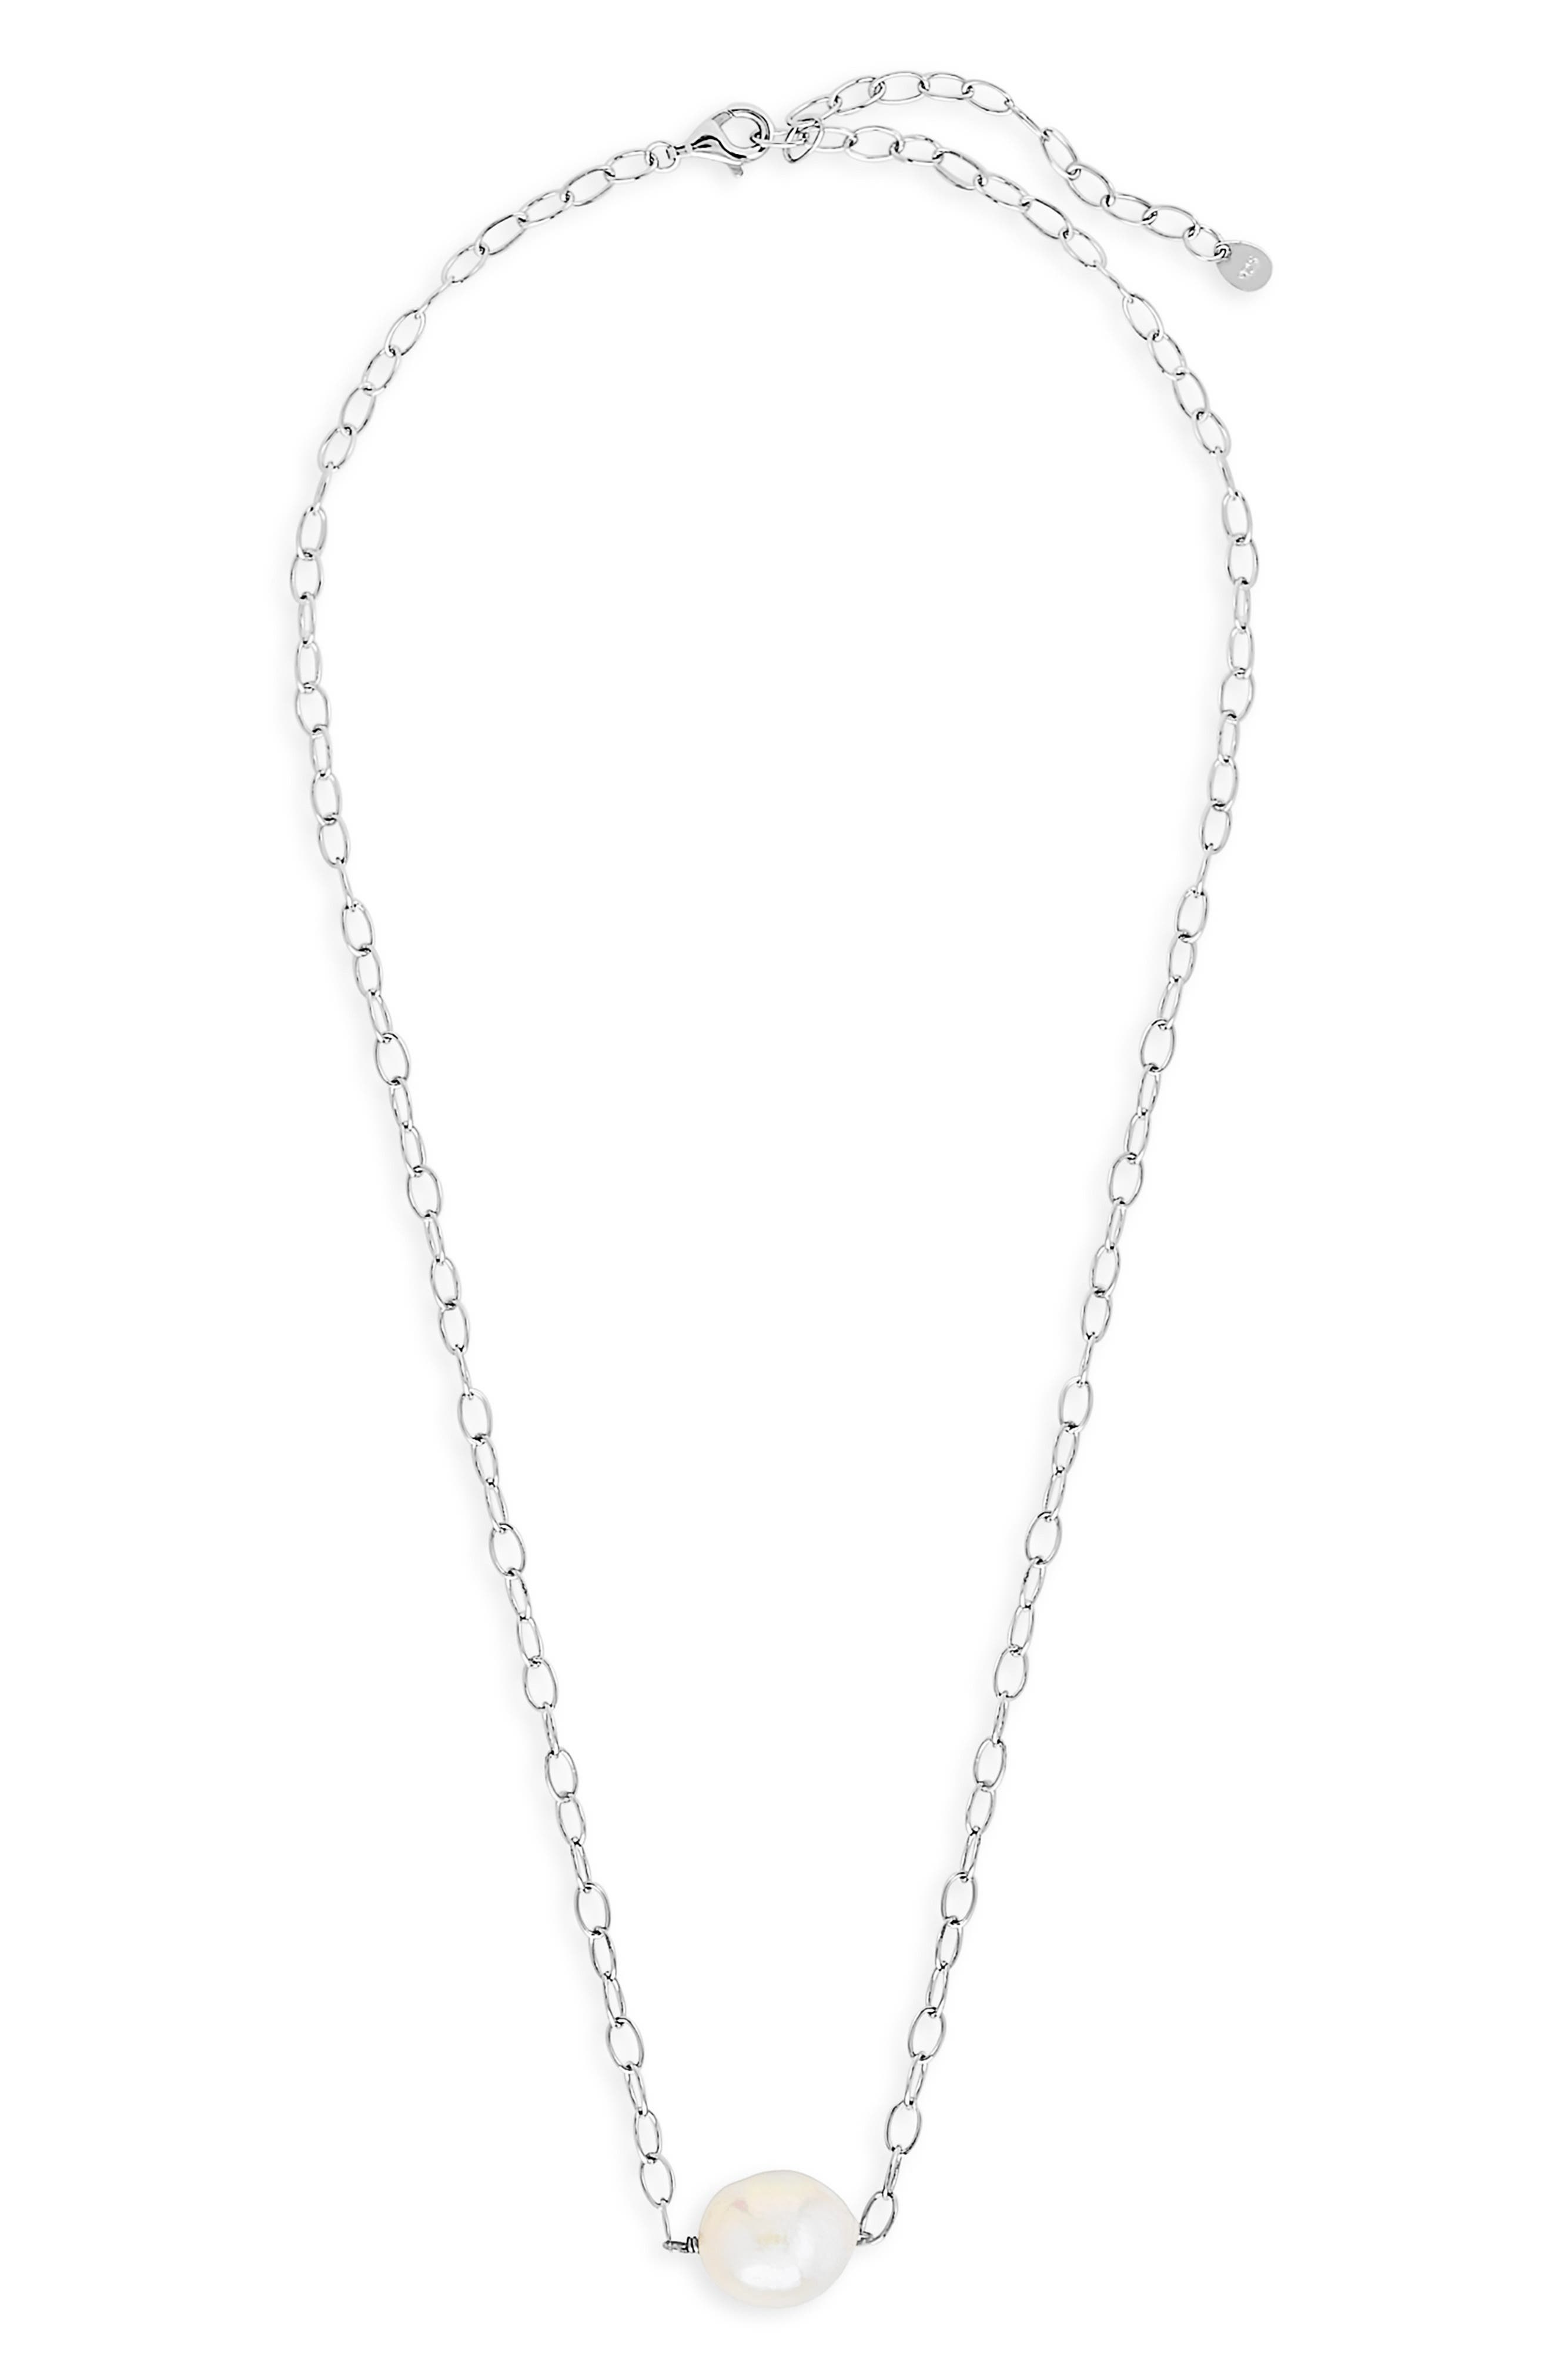 Simple adornments can be the sweetest selection as this fine-chained necklace set with a single natural pearl beautifully proves. Style Name: Sterling Forever Natural Pearl Pendant Necklace. Style Number: 6114390. Available in stores.